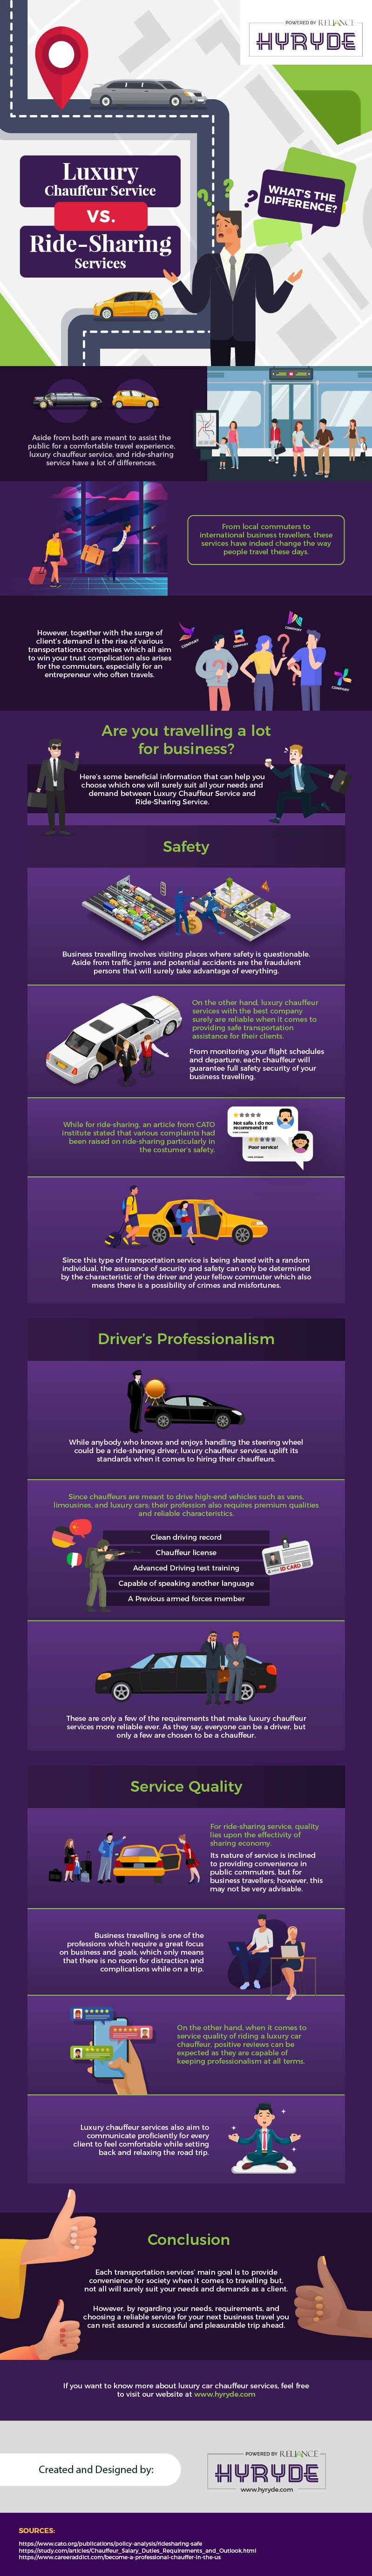 Luxury Chauffeur Service Vs. Ride-Sharing Services - Infographic